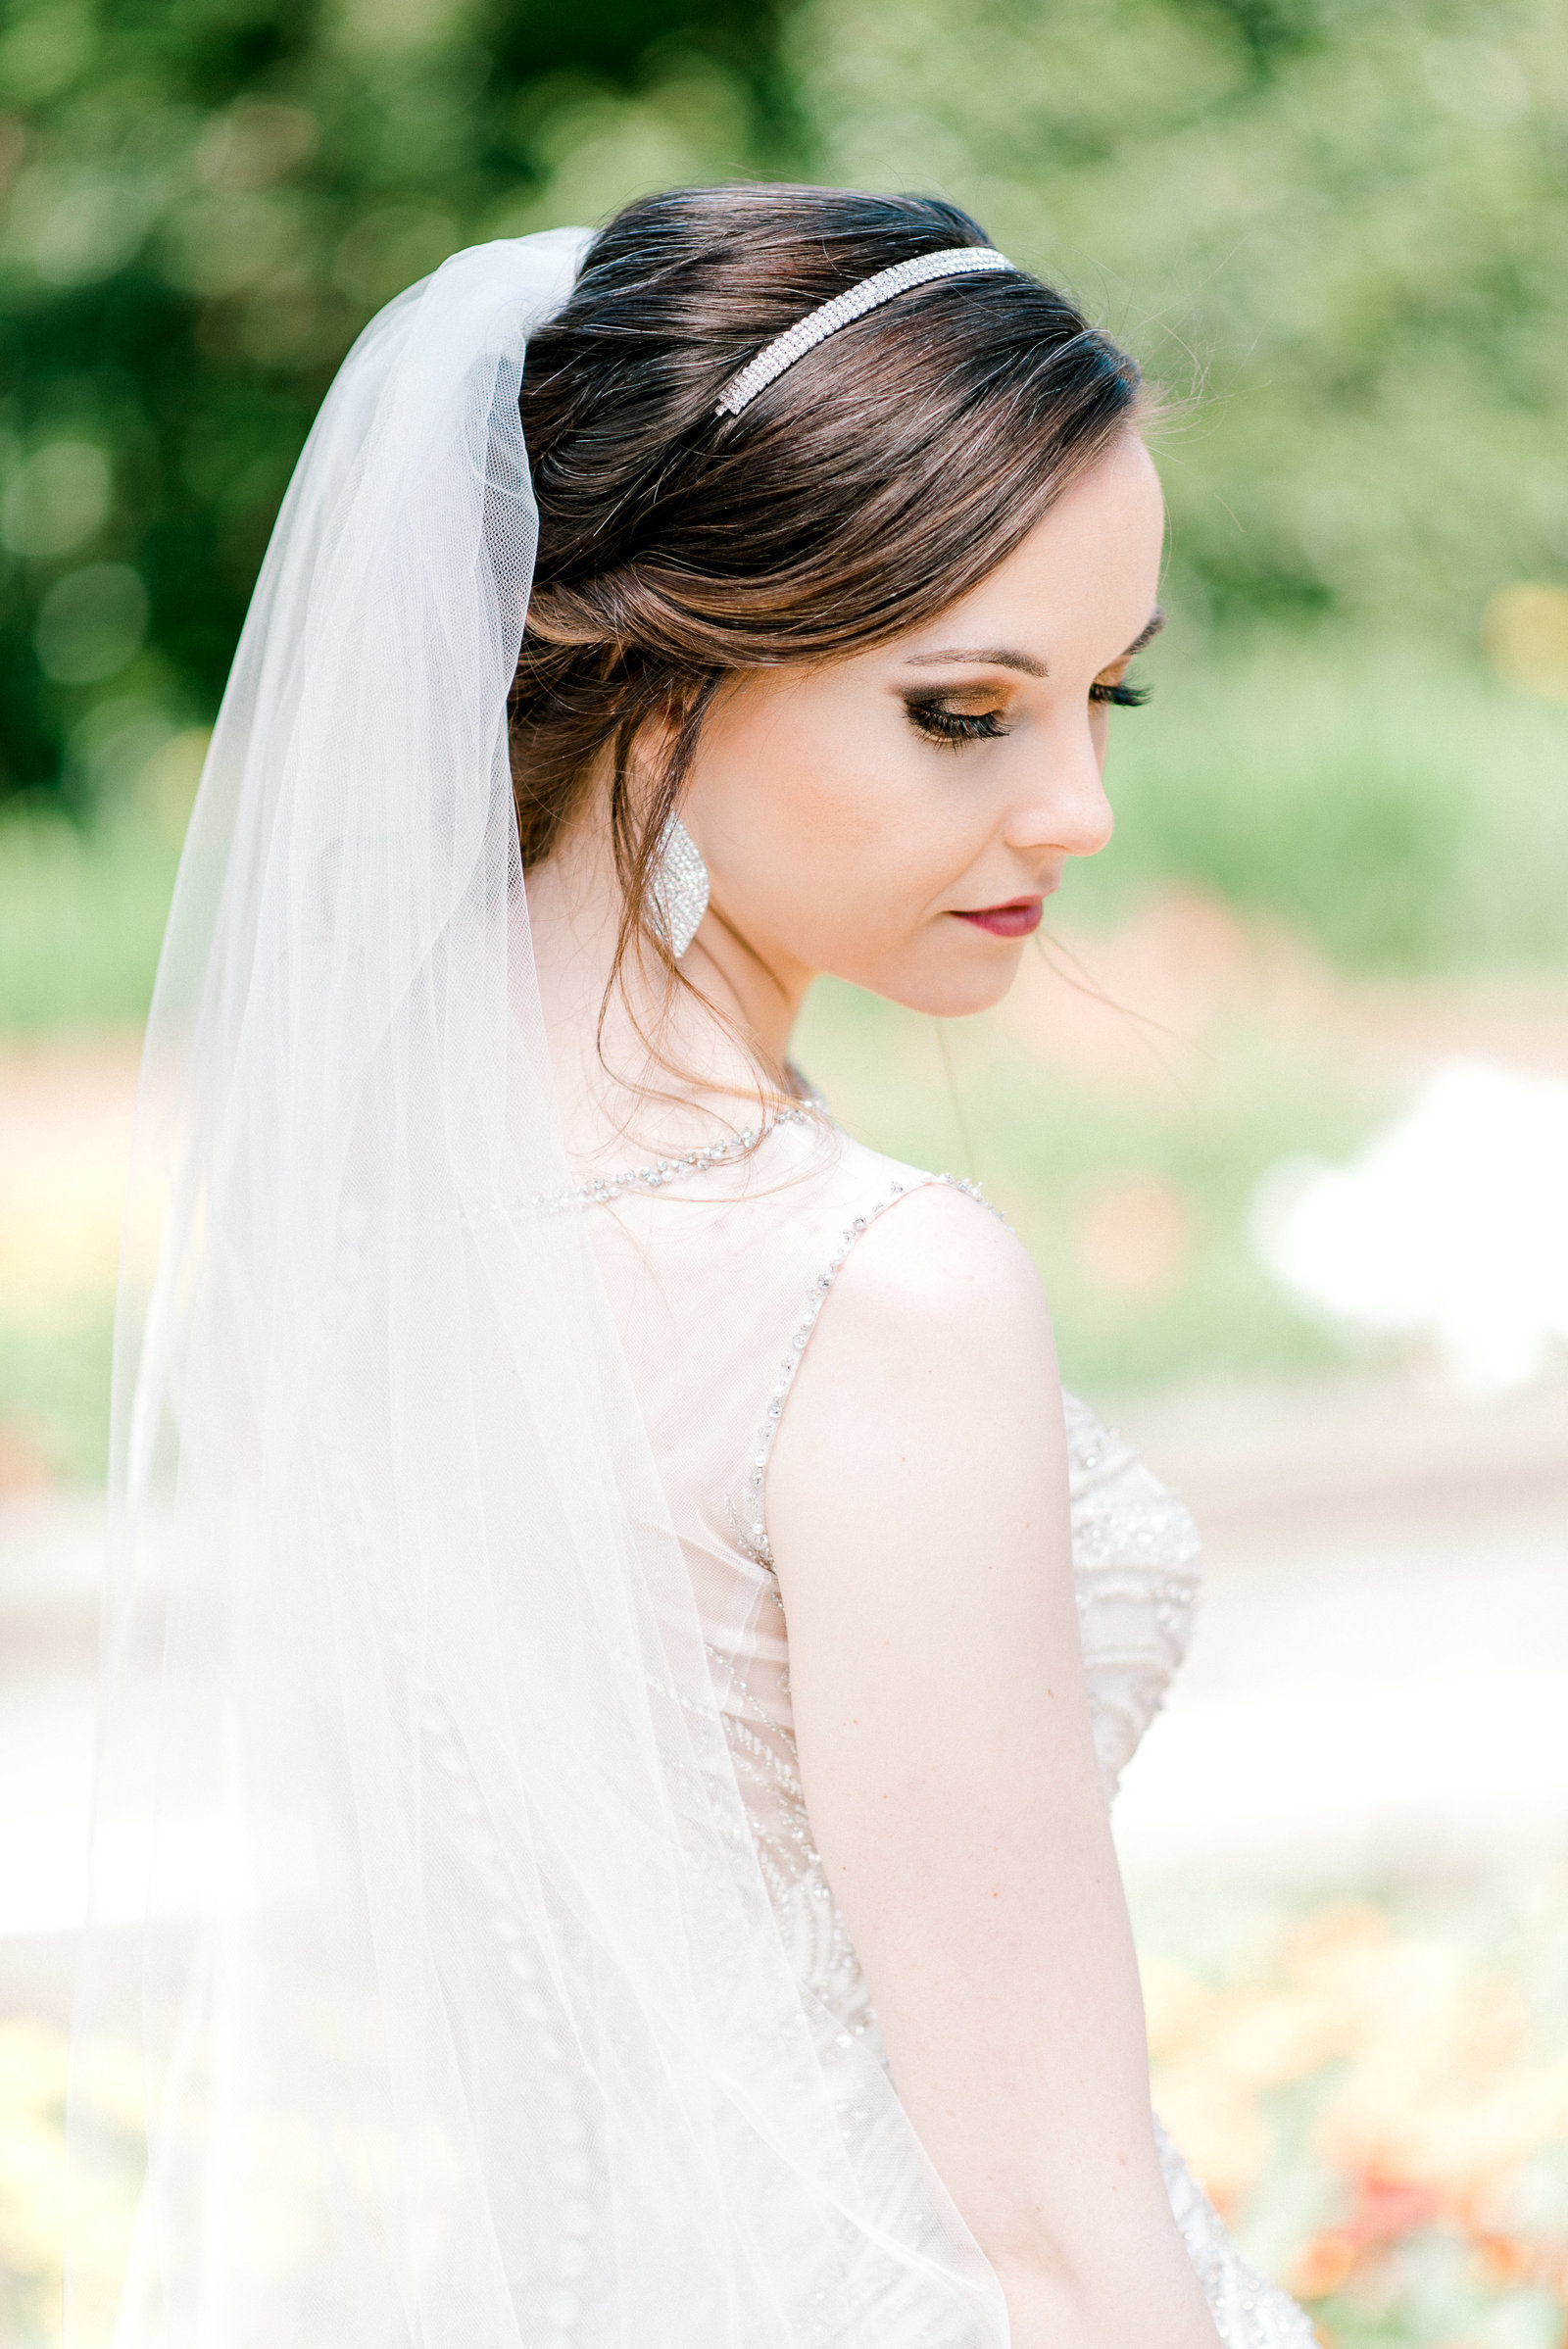 charlotte-wedding-photographer-daniel-stowe-botanical-garden-bride-bridal-session-wedding-fine-art-bright-and-airy-film-photographer-alyssa-frost-photography-3